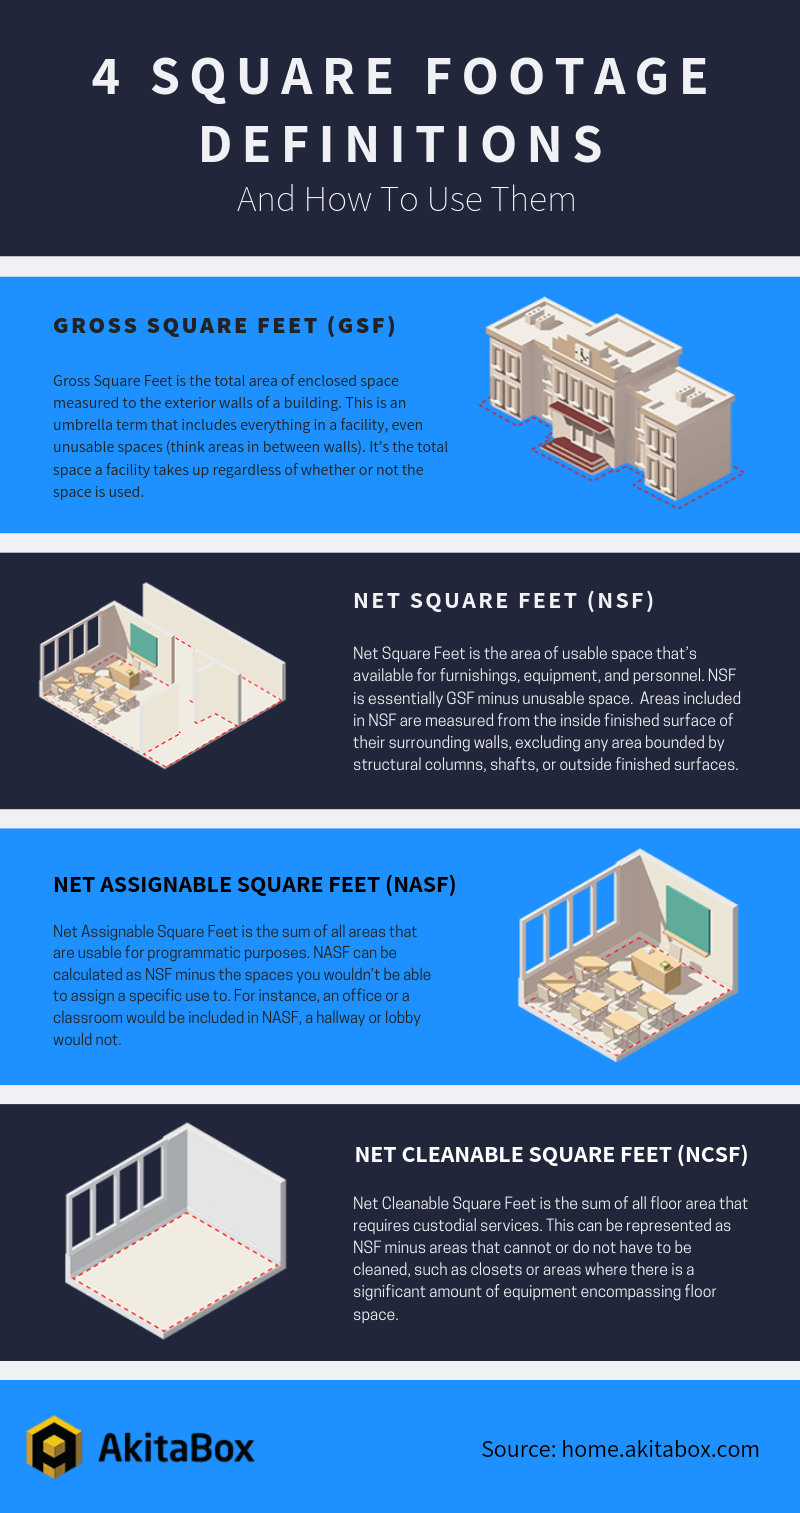 Square Footage Definitions Infographic Akitabox Definitions Square Footage Infographic